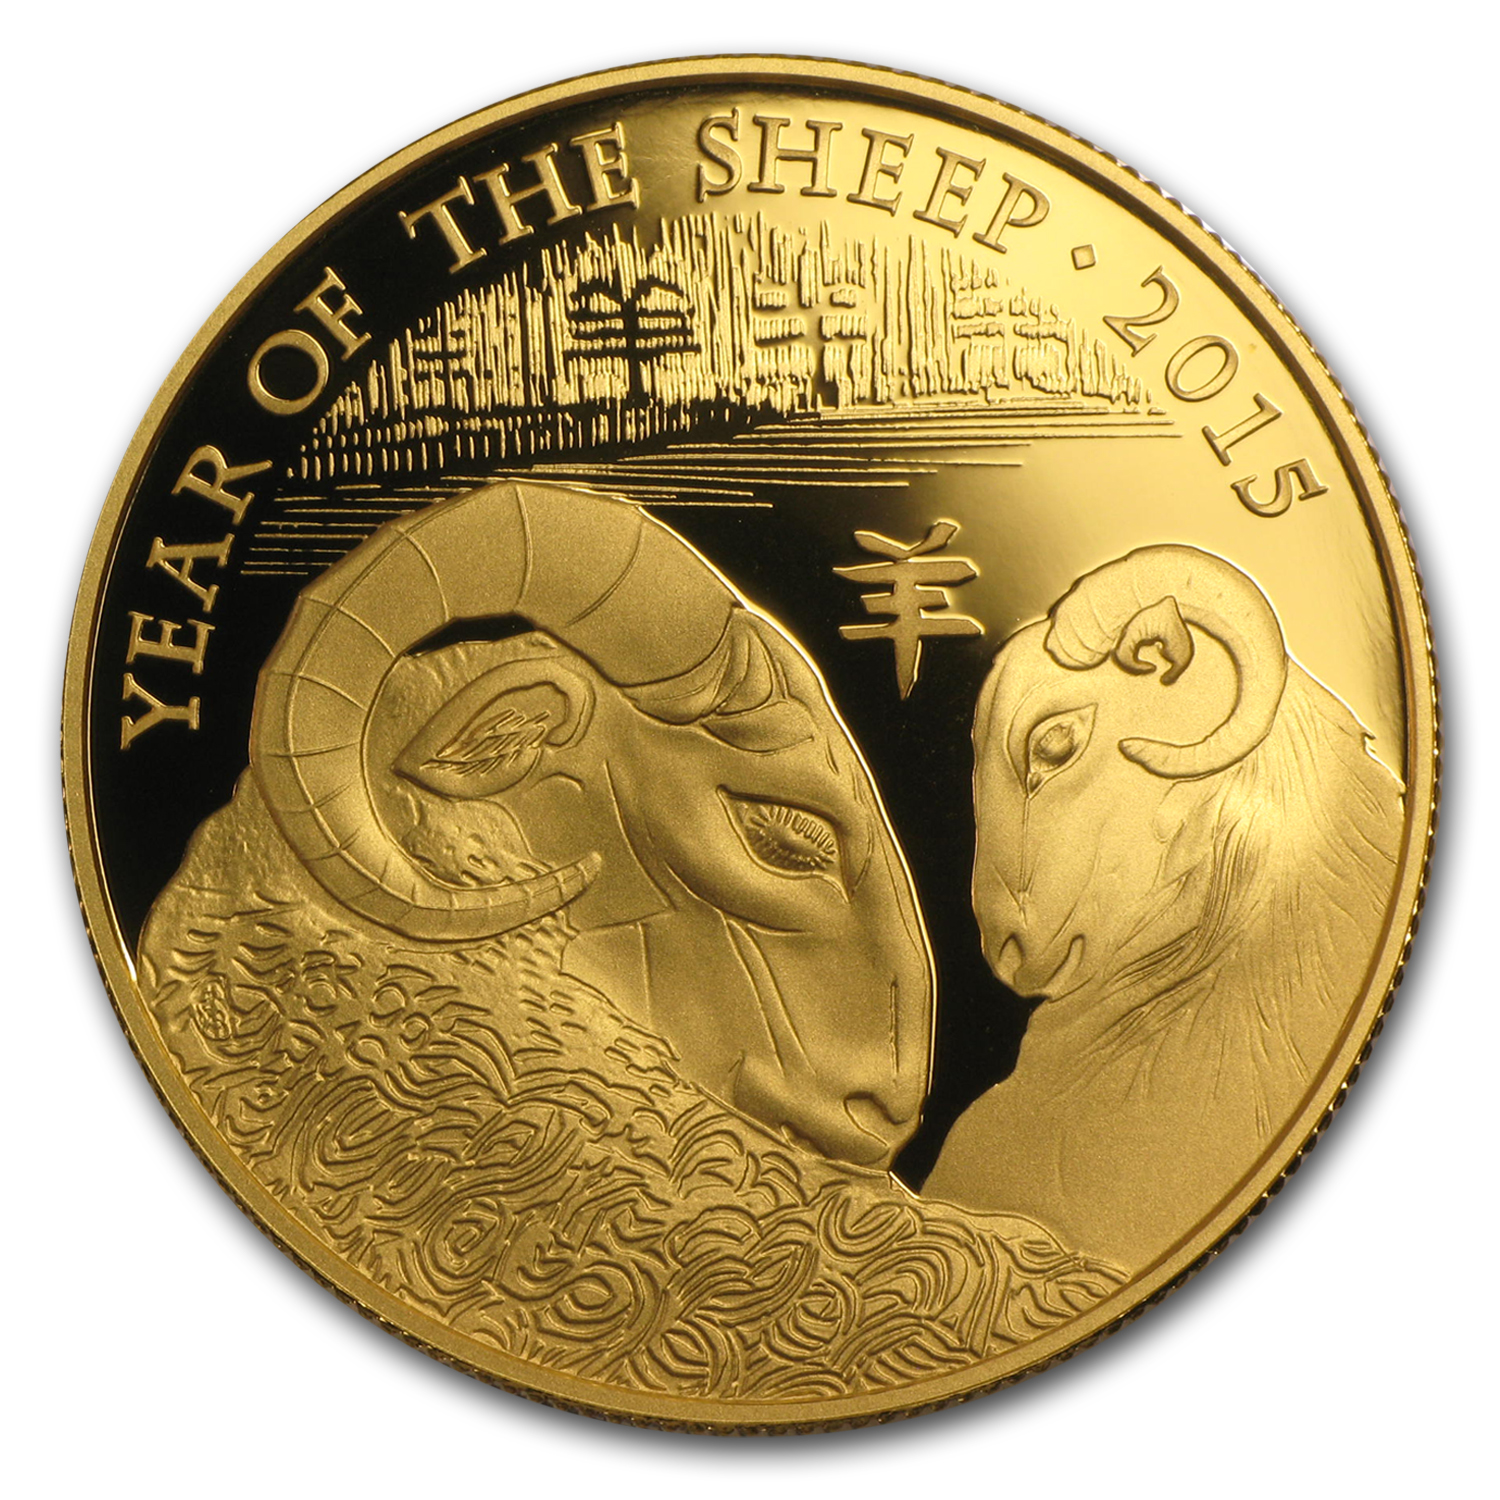 2015 1 oz Gold Great Britain Year of the Sheep Prf (w/Box & COA)